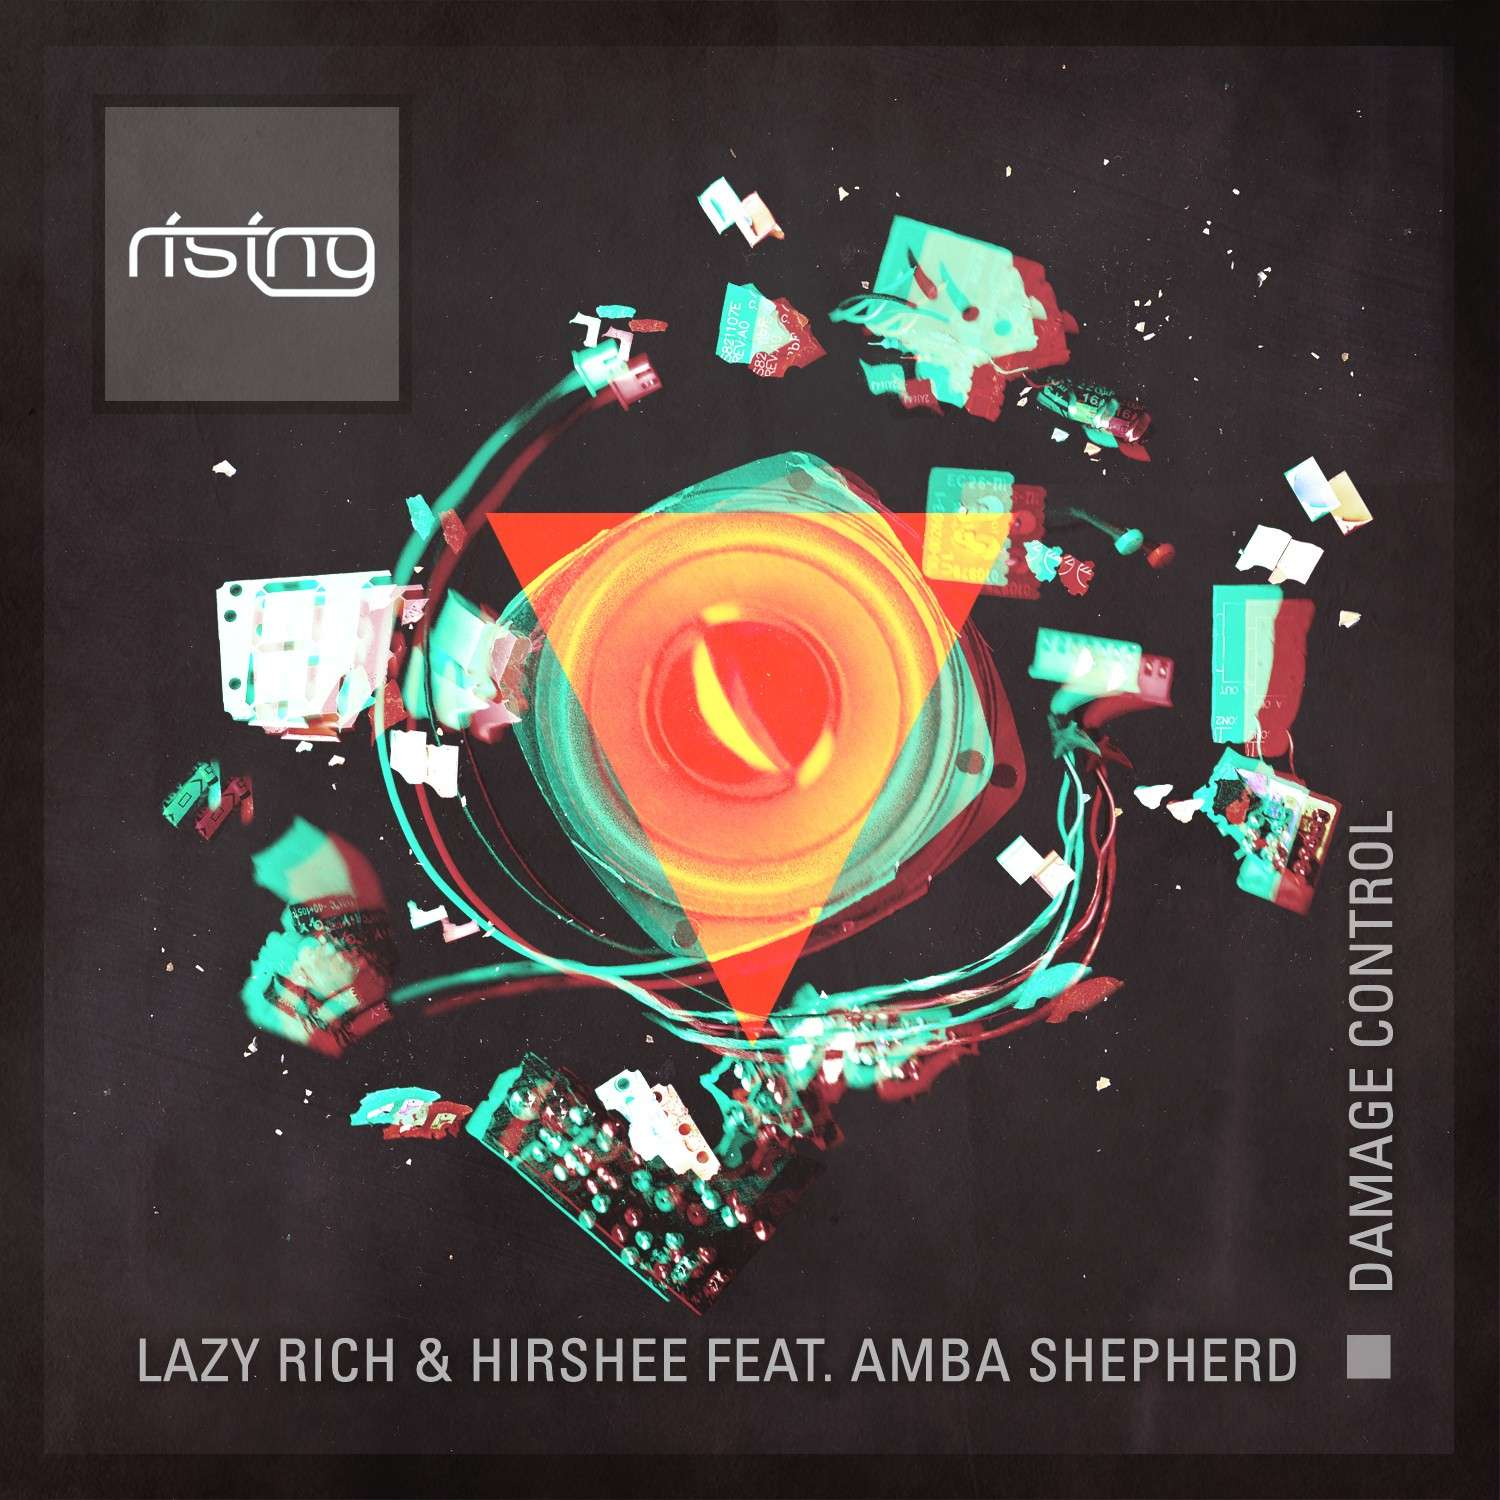 OUT MONDAY: Lazy Rich & Hirshee feat. Amba Shepherd - Official's